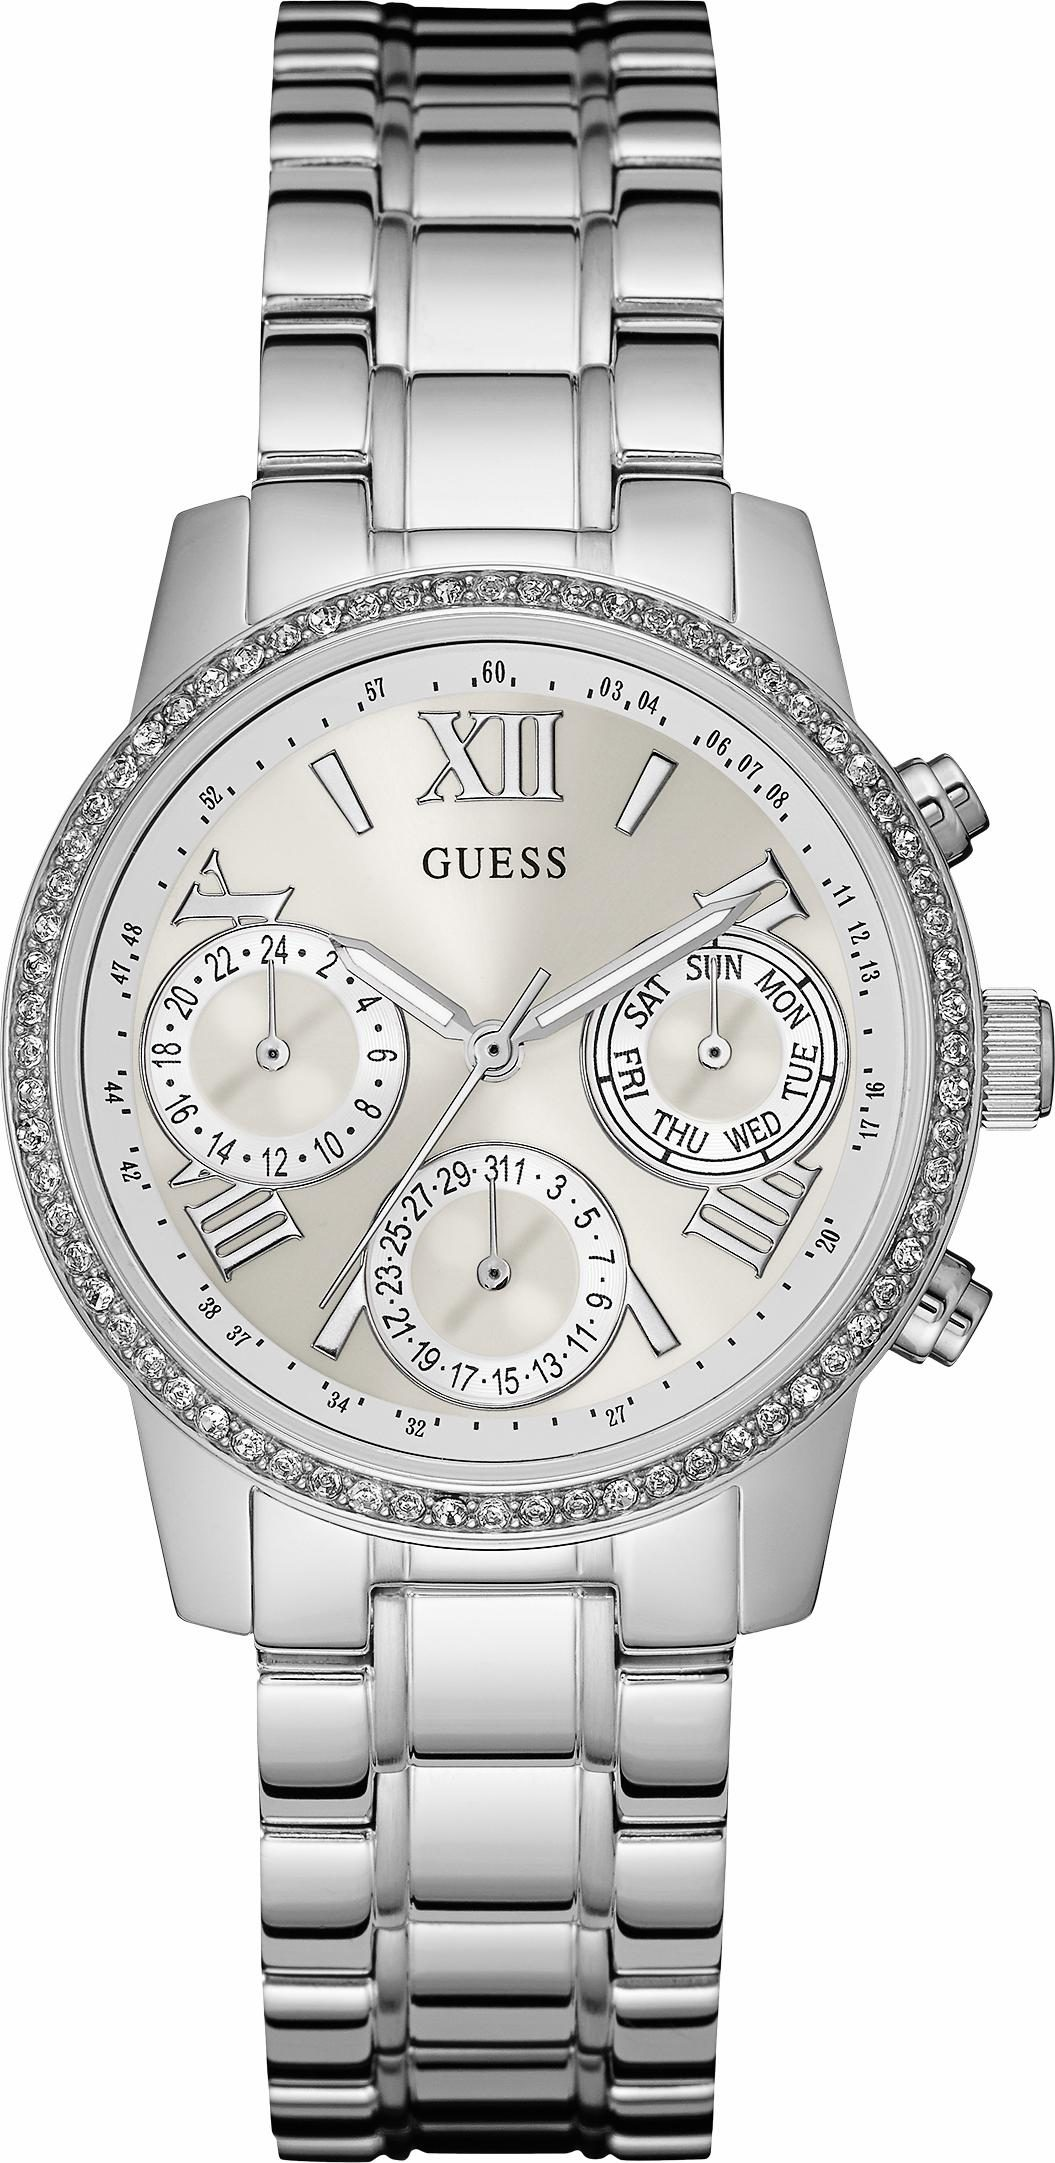 Guess Multifunktionsuhr »W0623L1«